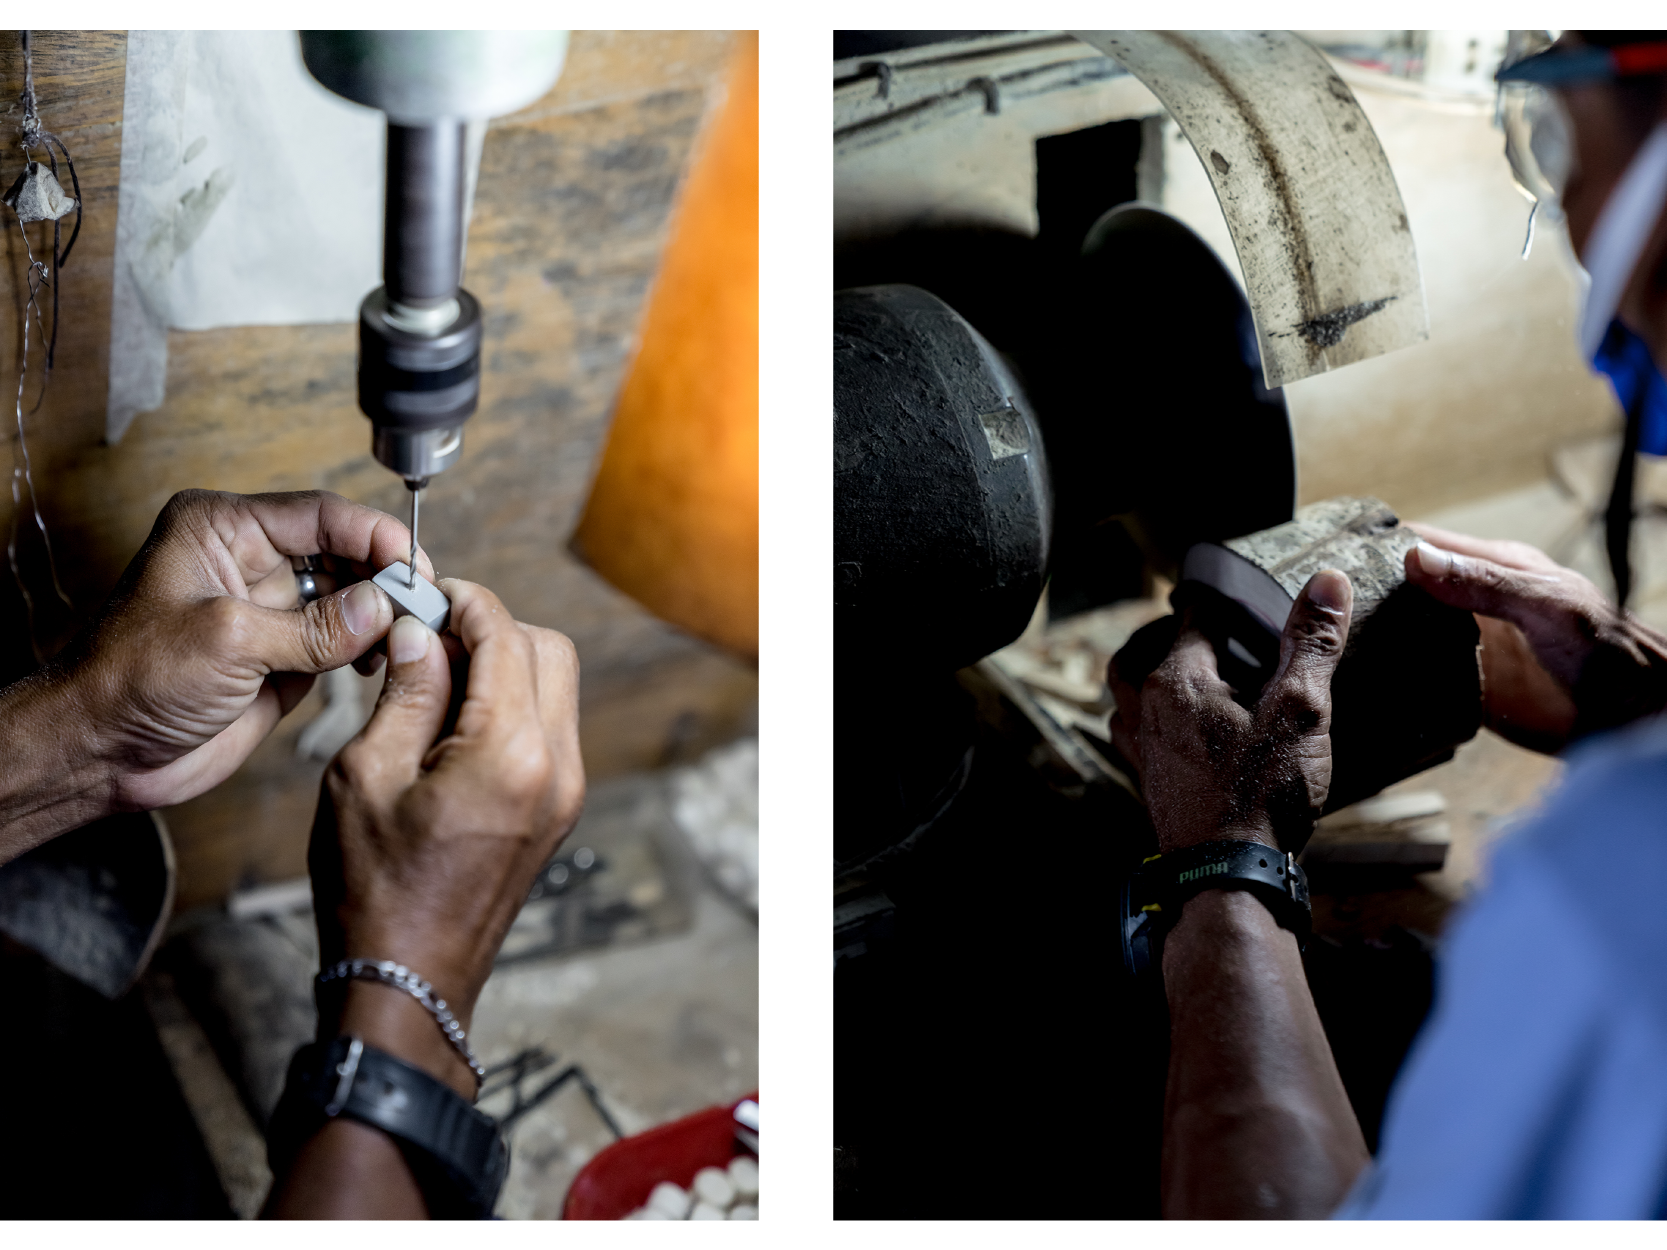 Artisans polishing and creating wooden beads for jewelry